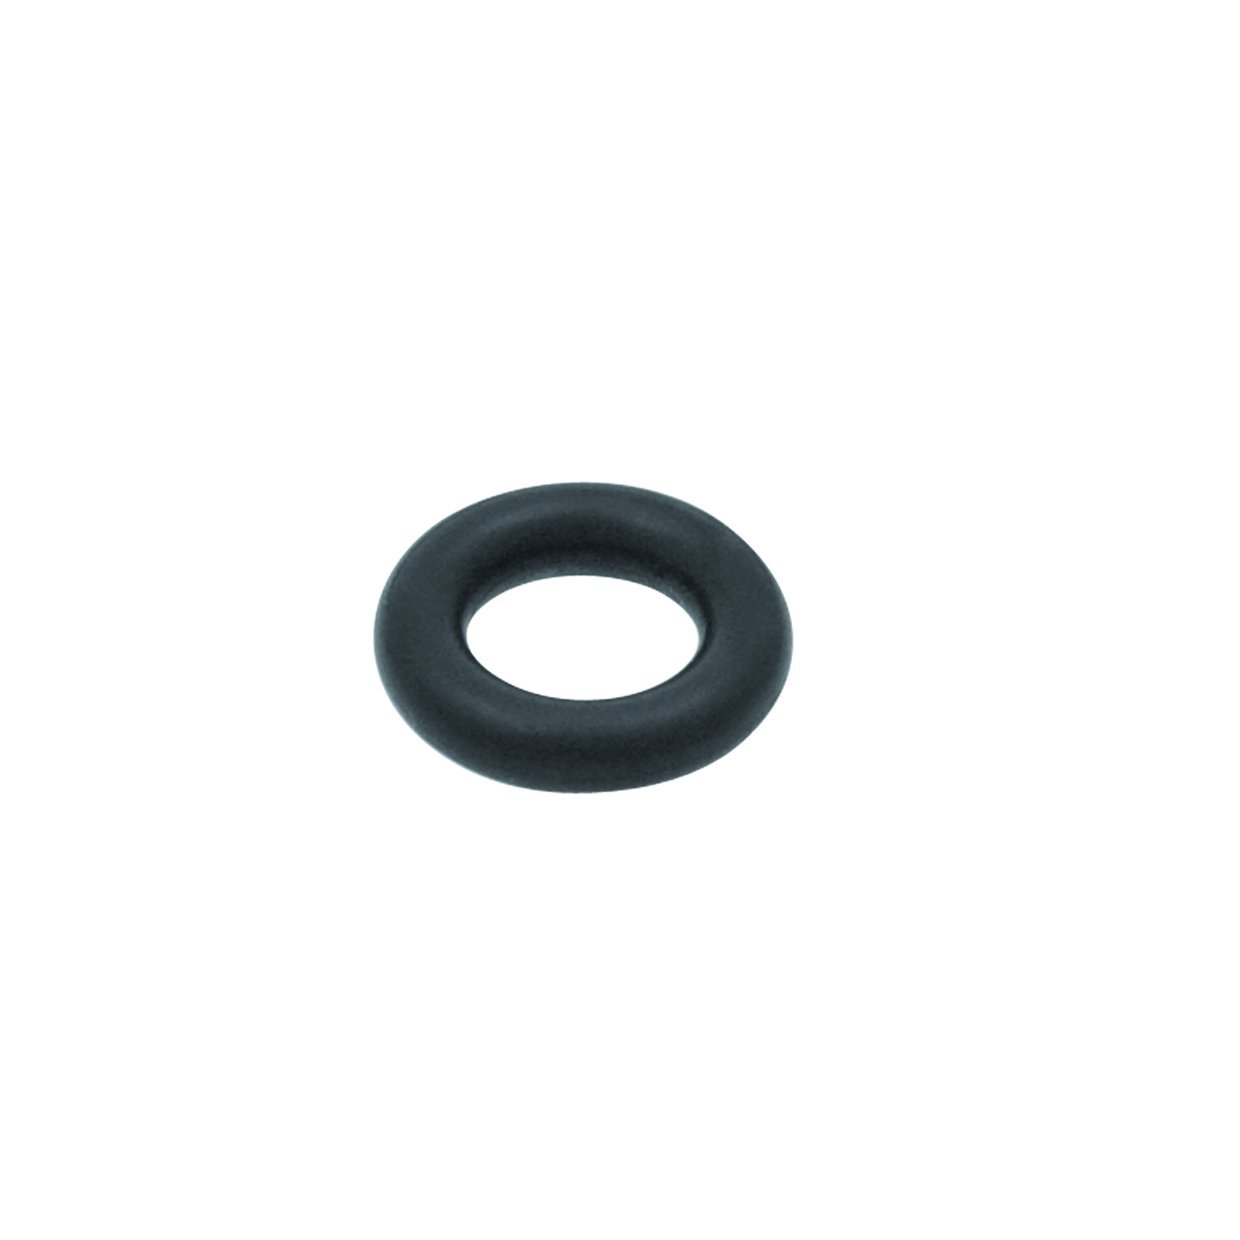 Fissler sealing ring for the Euromatic for Vitavit royal pressure cookers from 1994 on and magic comfort steam cooking pots, easy to replace (011-631-00-760/0) 011 631 00 760